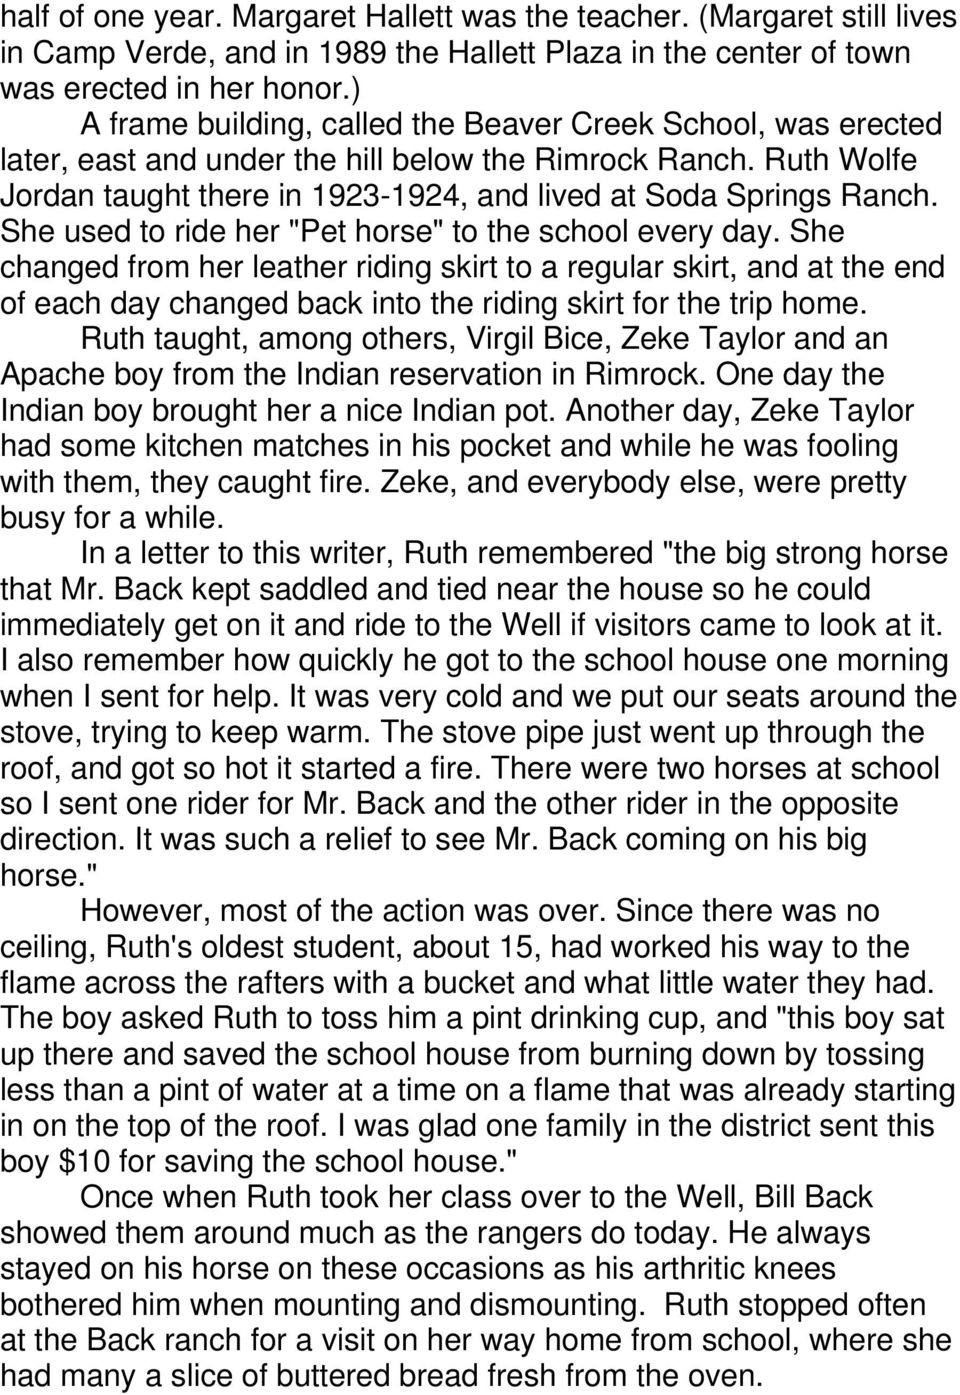 "She used to ride her ""Pet horse"" to the school every day. She changed from her leather riding skirt to a regular skirt, and at the end of each day changed back into the riding skirt for the trip home."